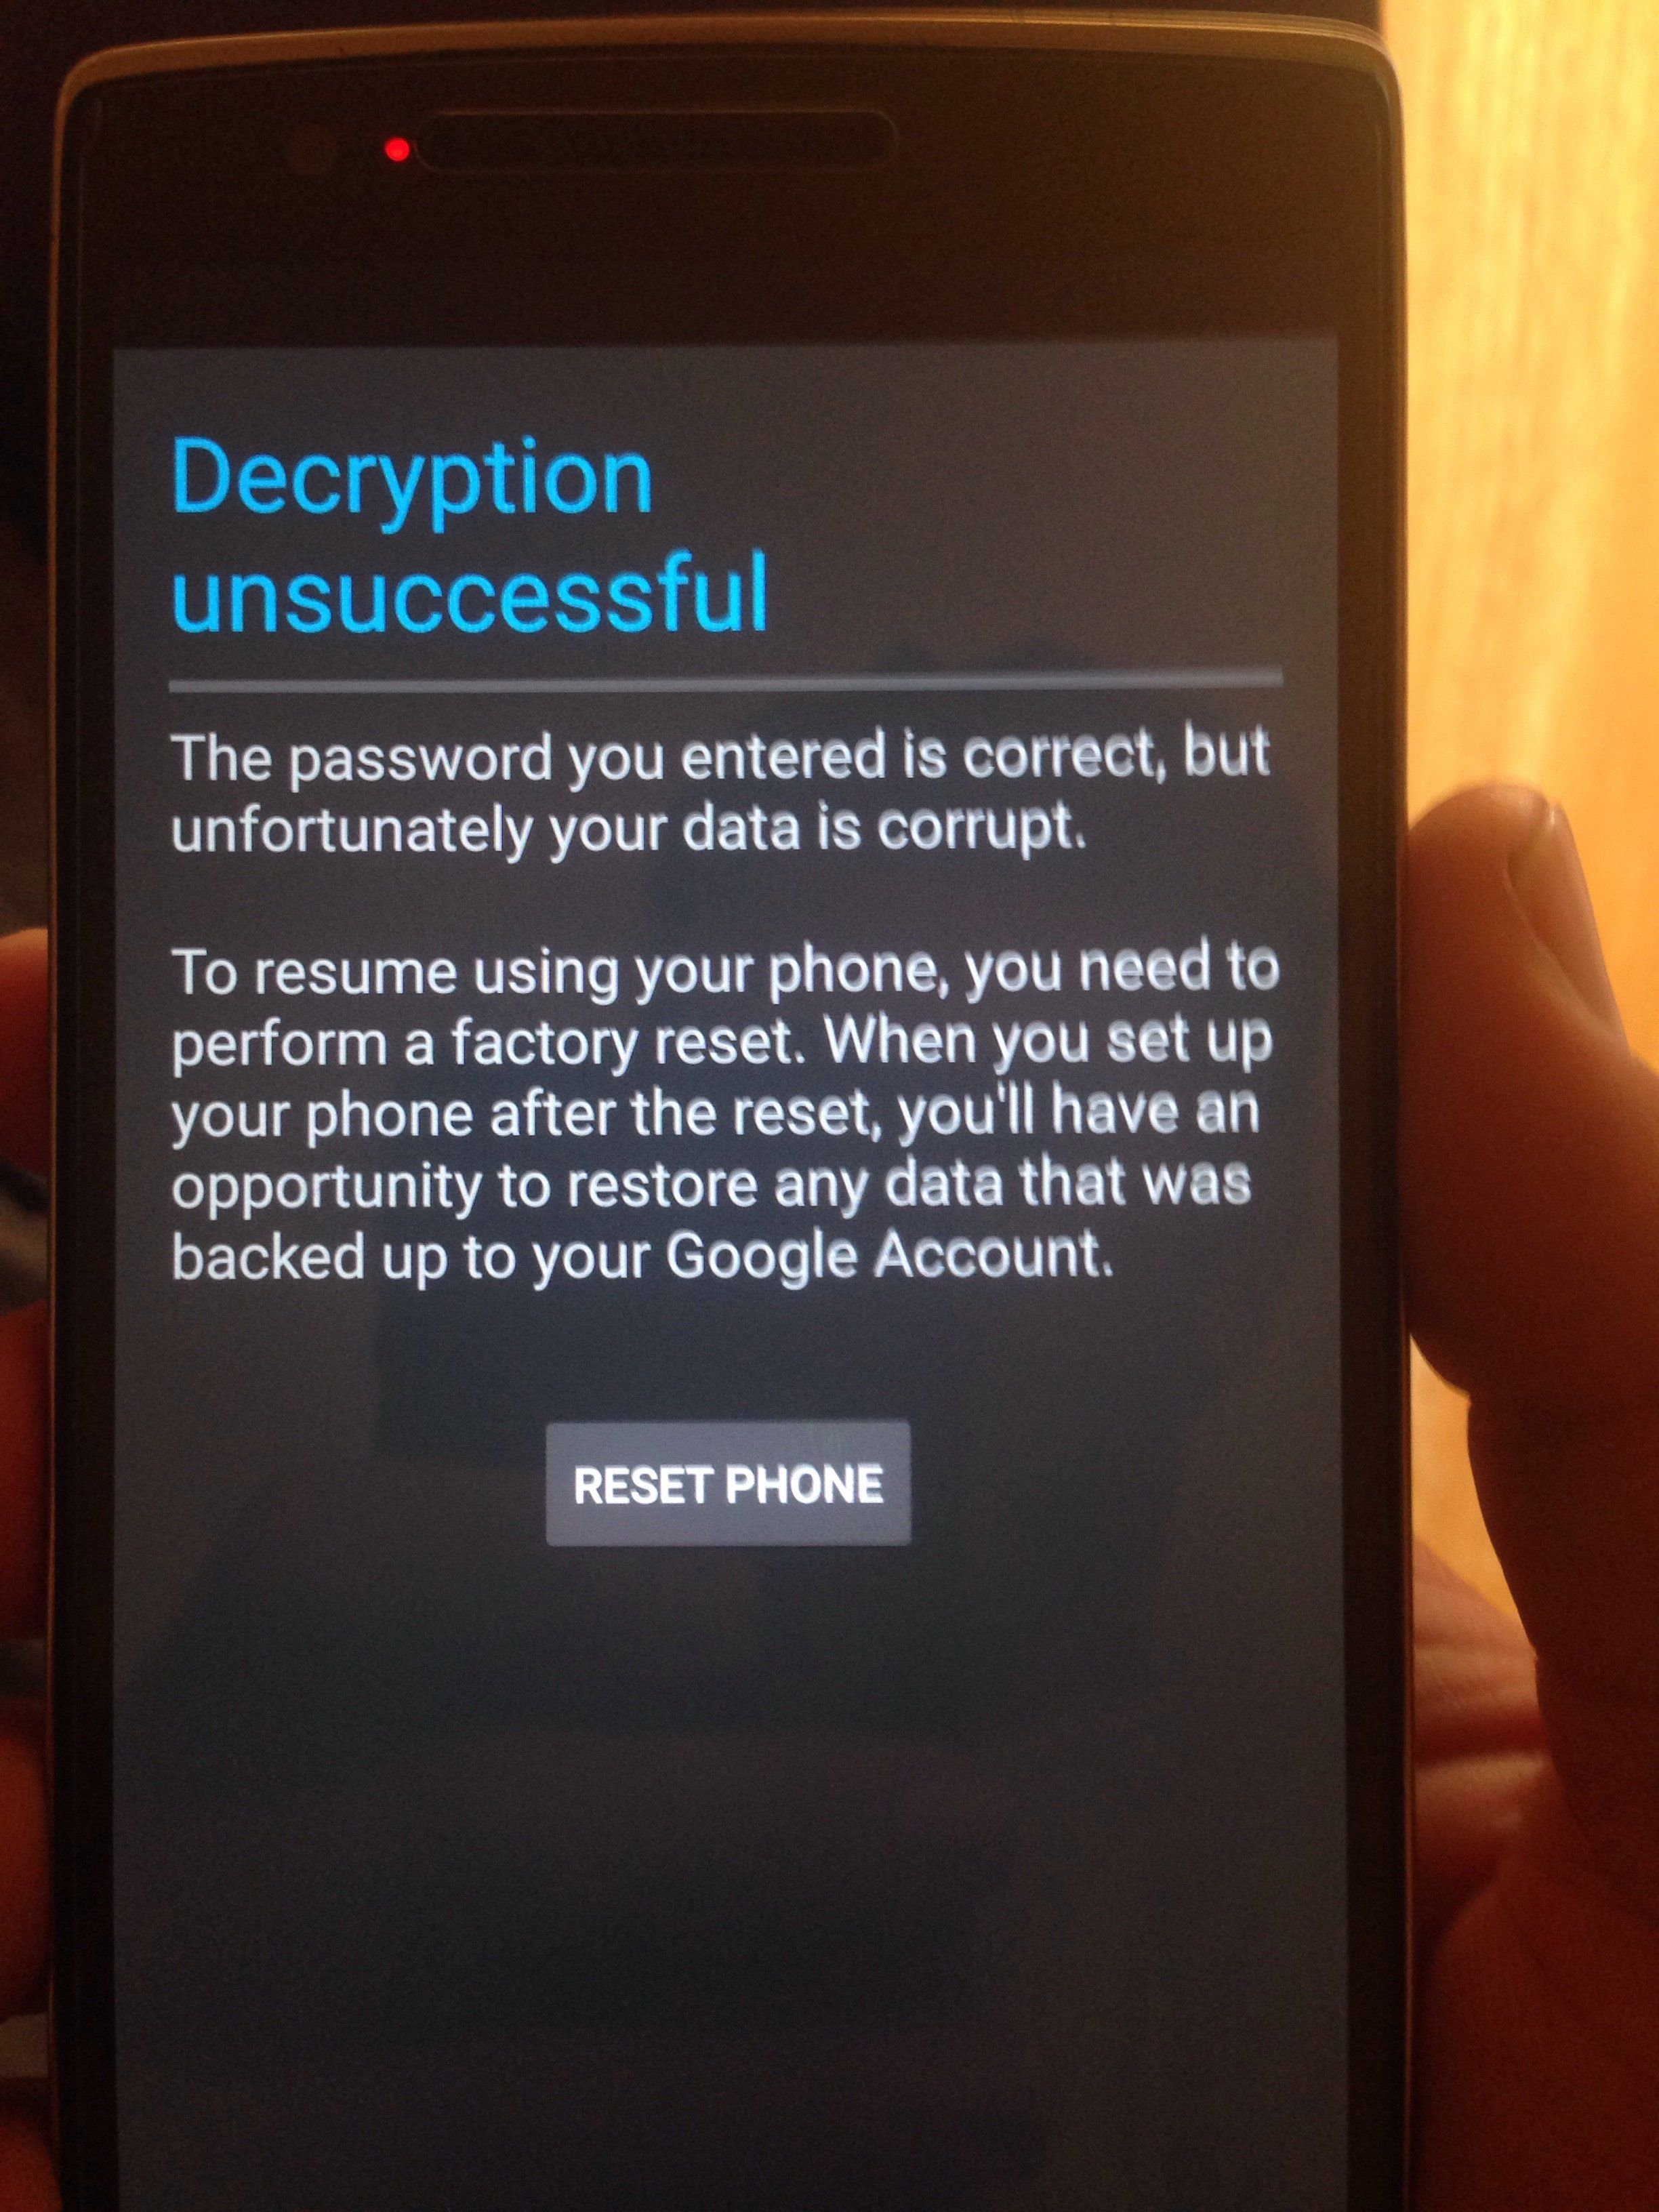 Oneplus one stuck at cyanogenmod screen forever  Won't boot